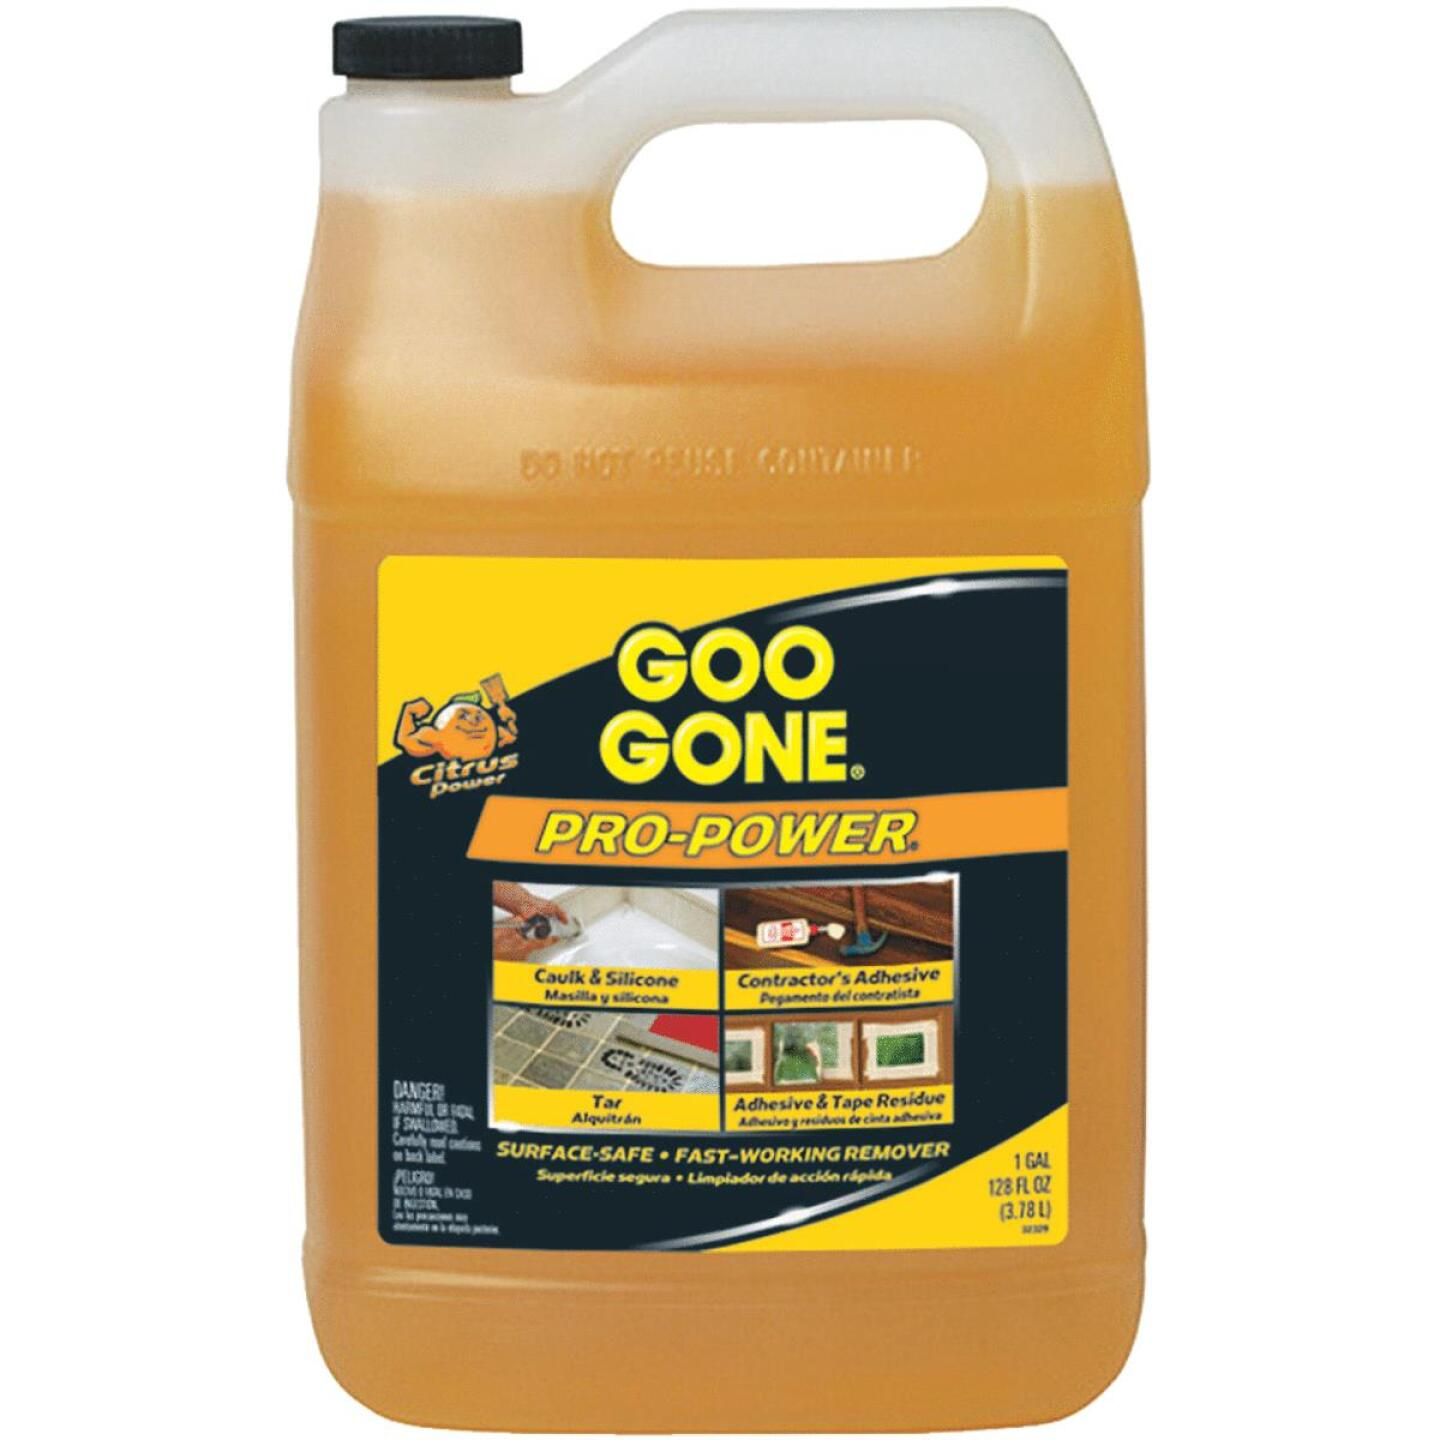 Goo Gone 1 Gal. Pro-Power Adhesive Remover Image 86